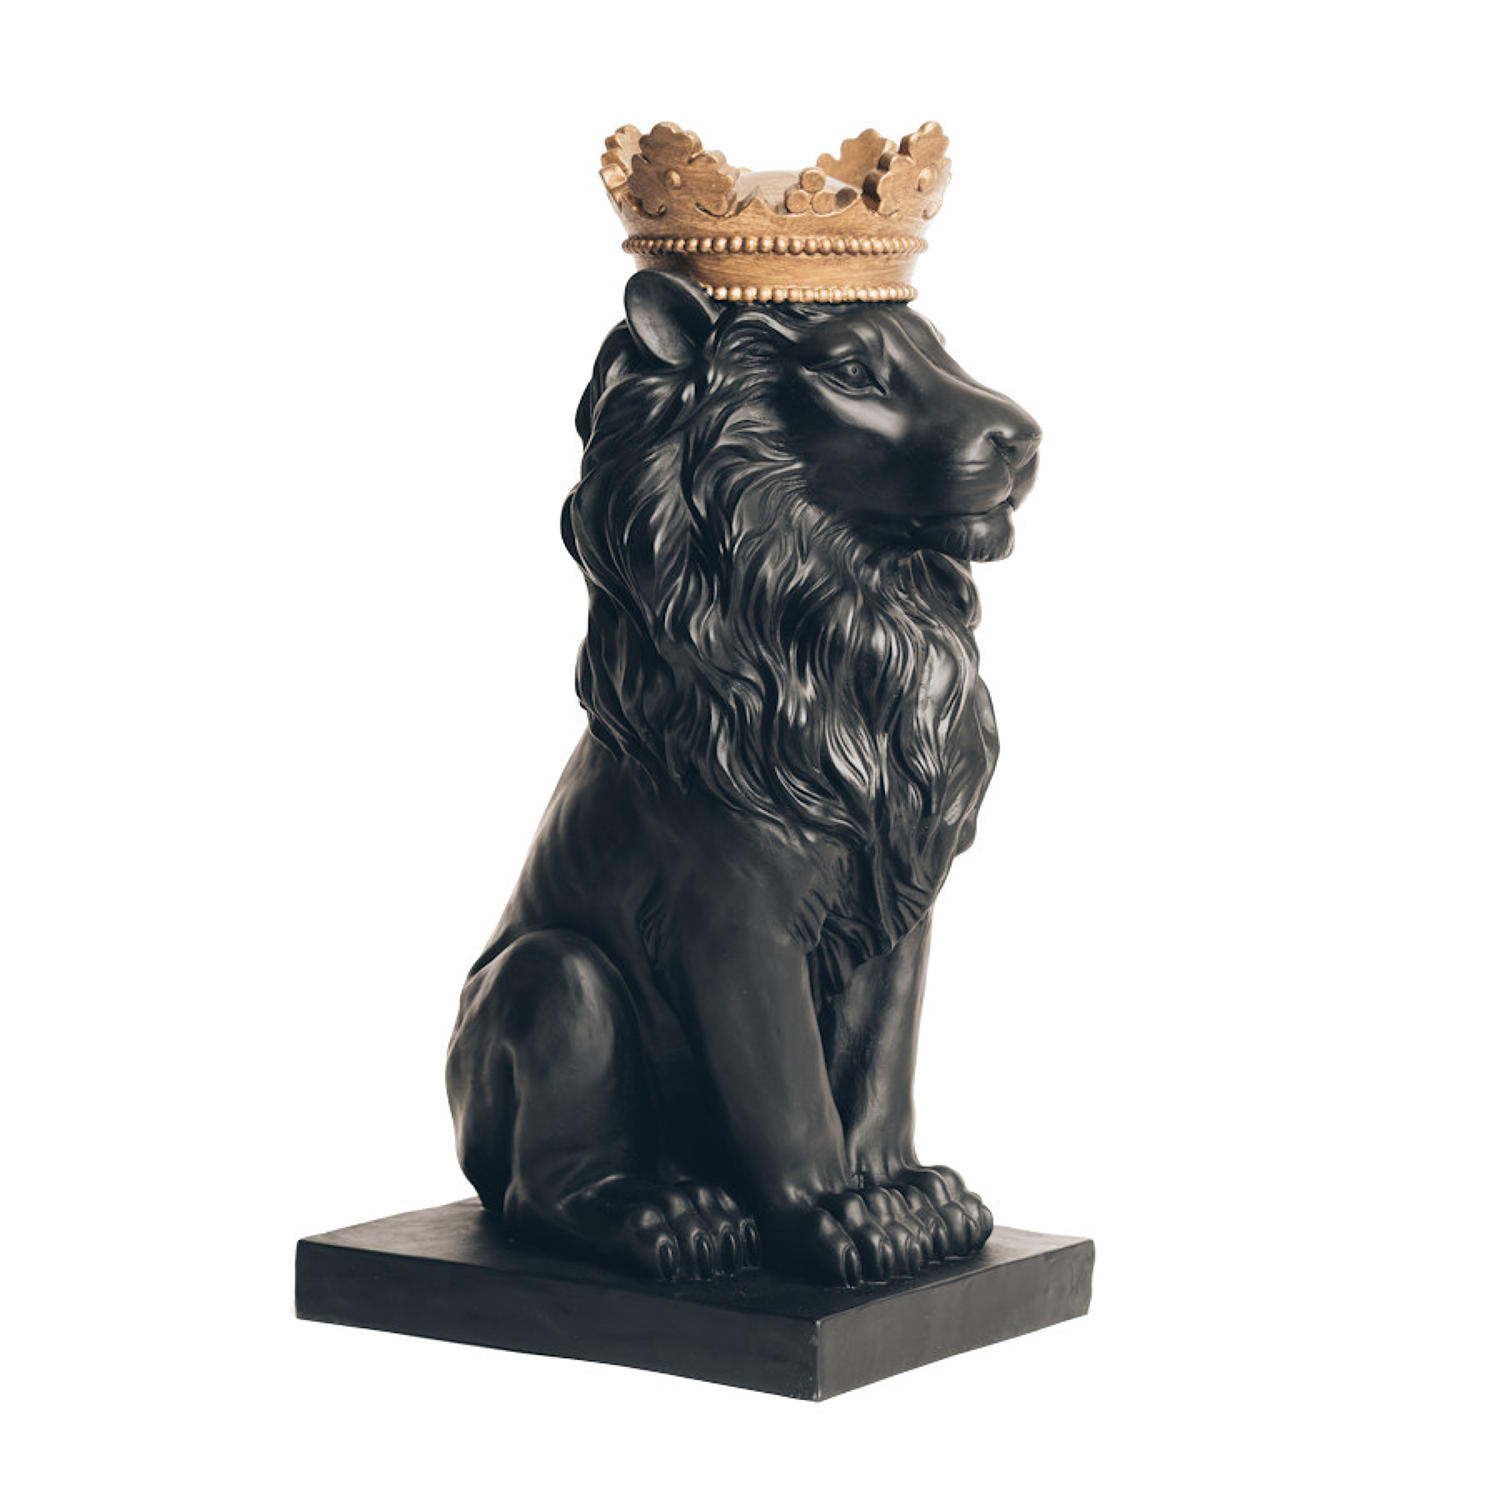 Majestic black and gold lion - looks fabulous as a pair